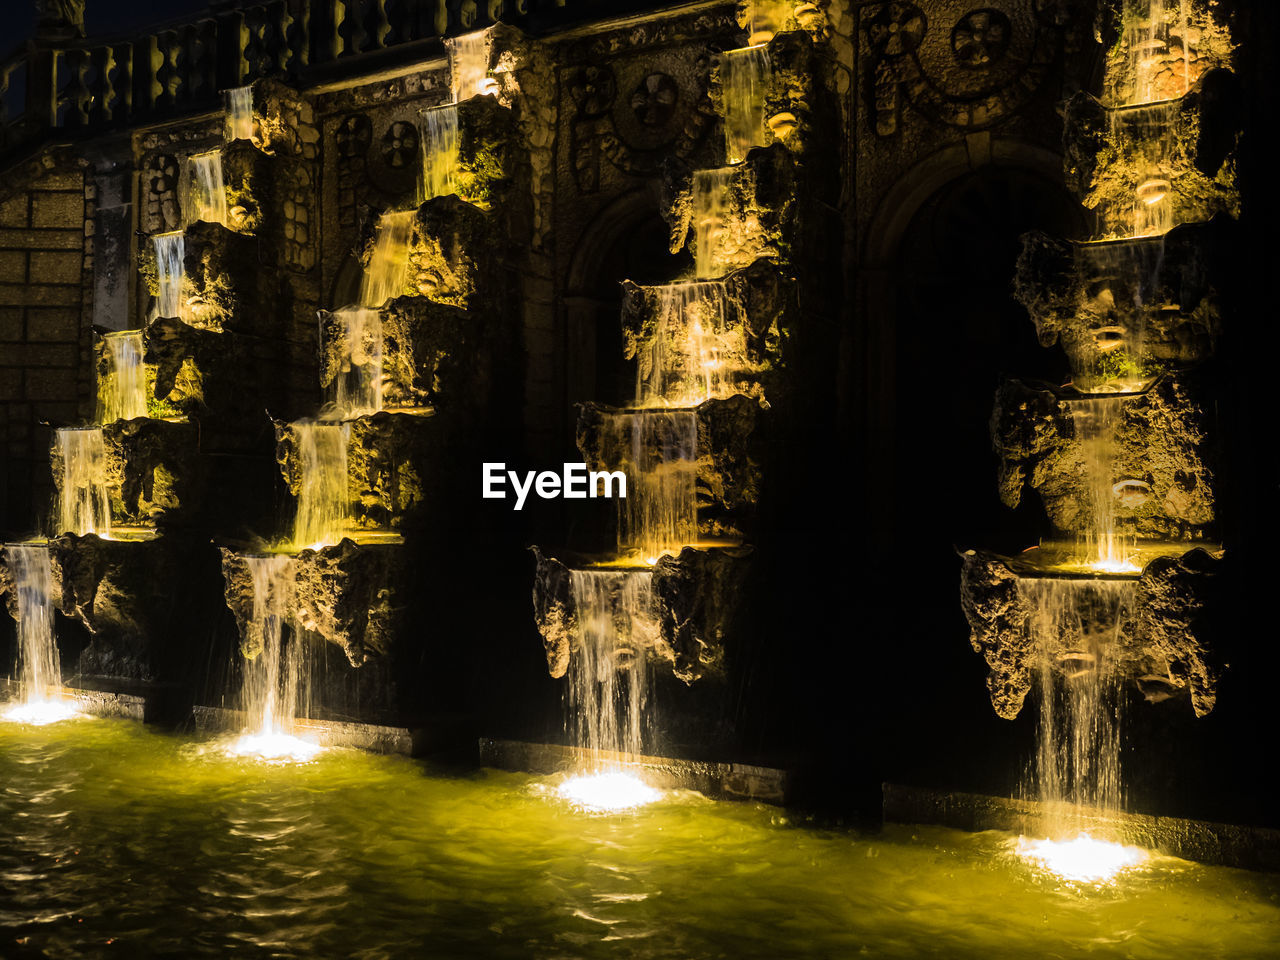 water, illuminated, spirituality, religion, place of worship, no people, night, waterfront, motion, statue, travel destinations, gold colored, sculpture, architecture, outdoors, close-up